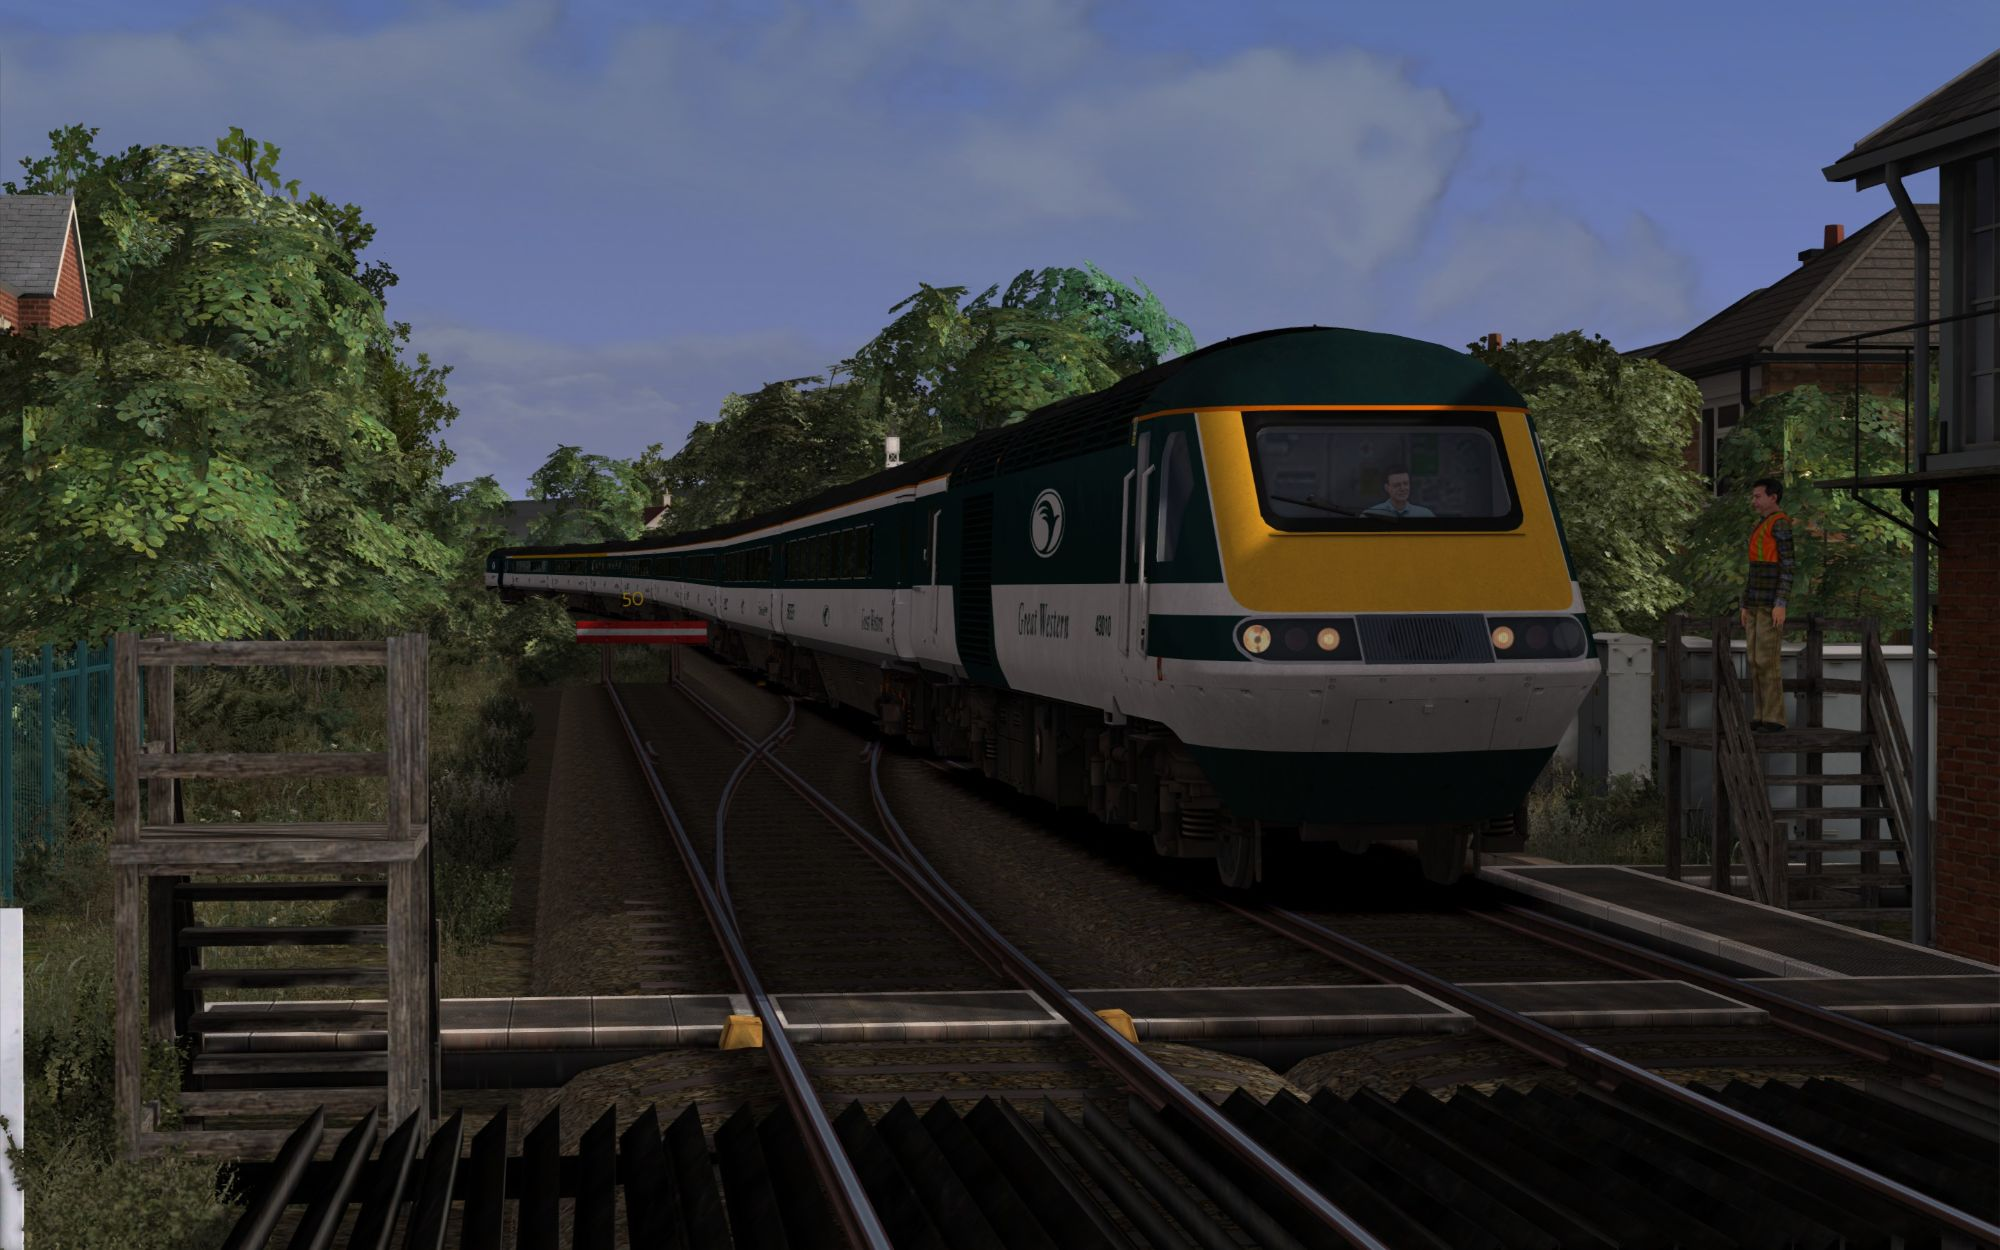 Image showing screenshot of the 1G70 - 1713 Whitby to Ealing Broadway scenario